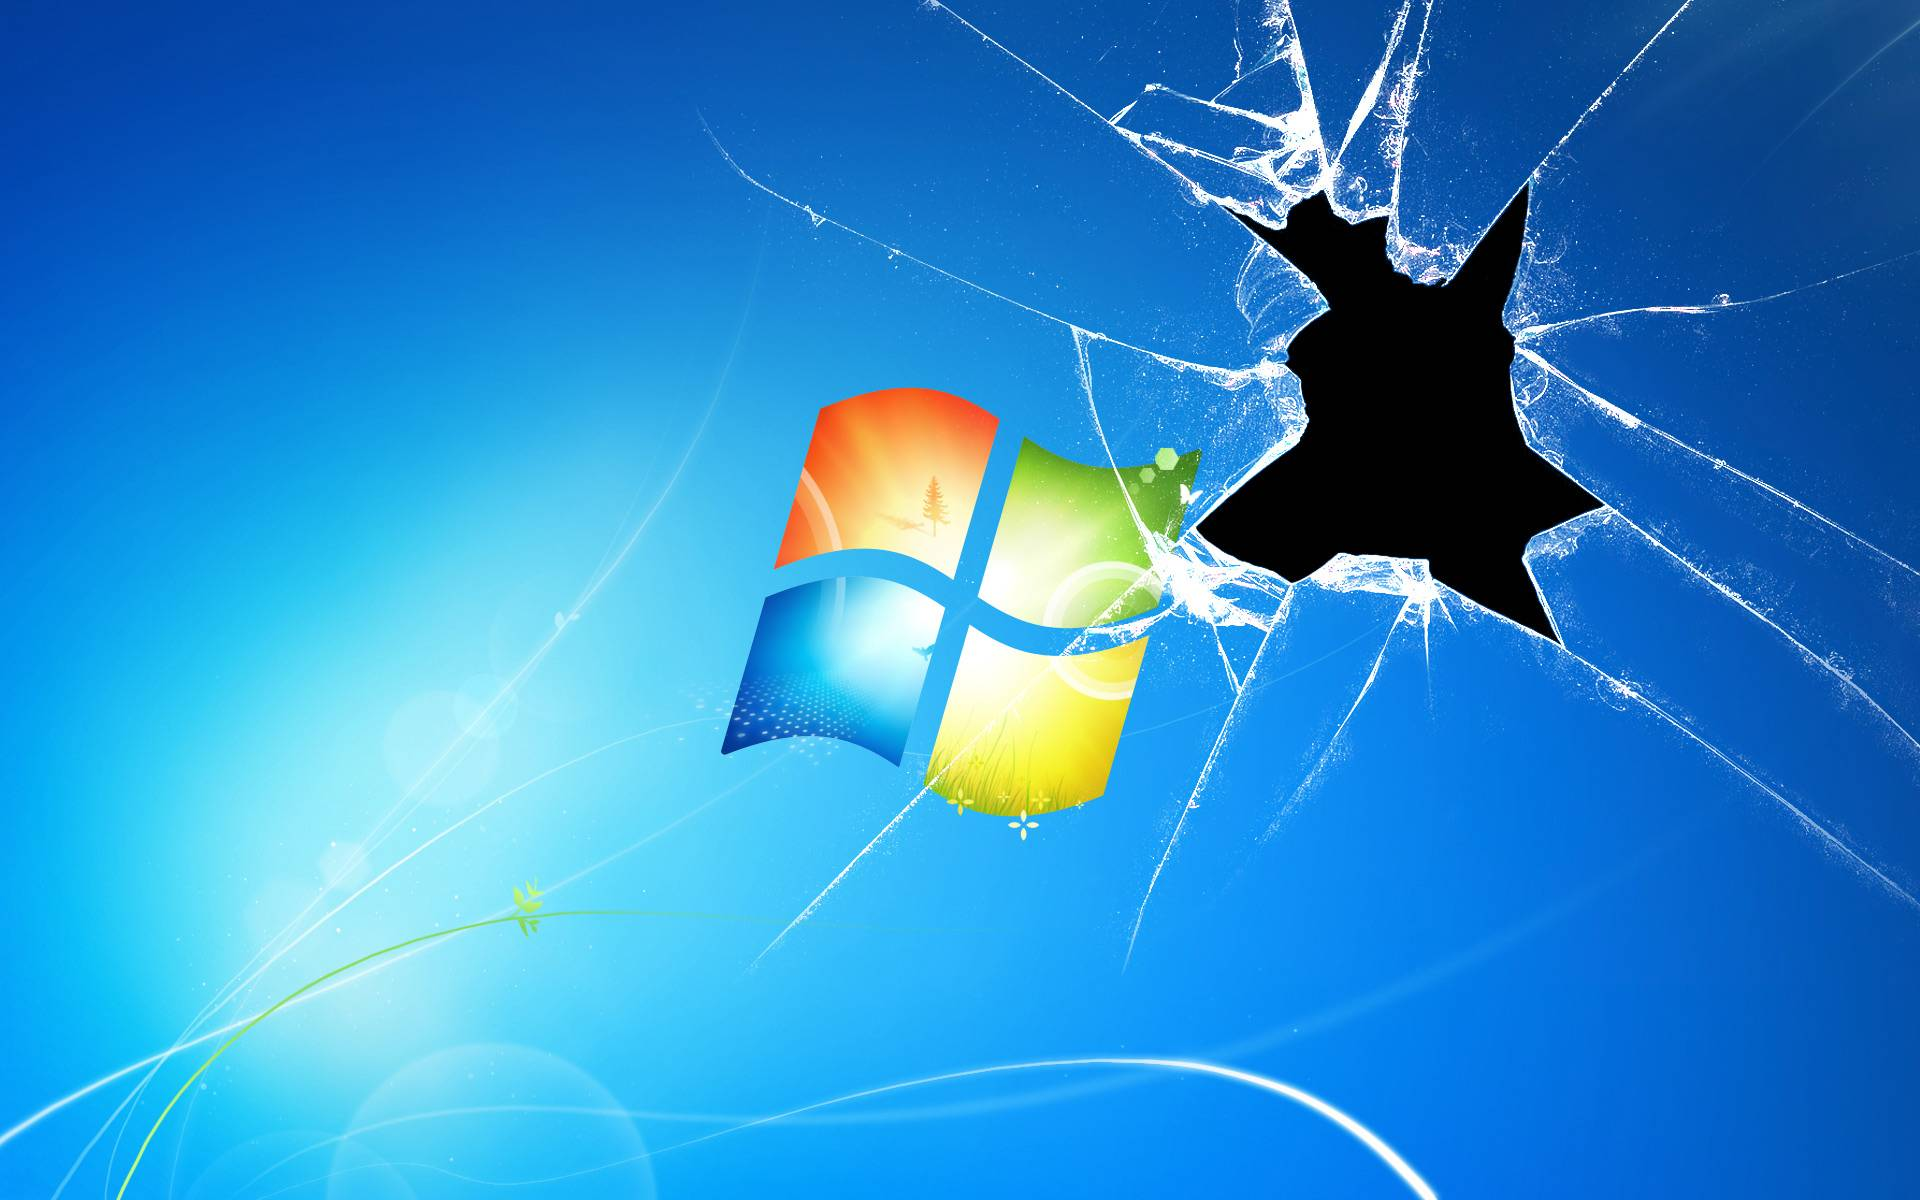 Download Cracked Screen Windows HD Wallpaper 2262 Full Size 1920x1200